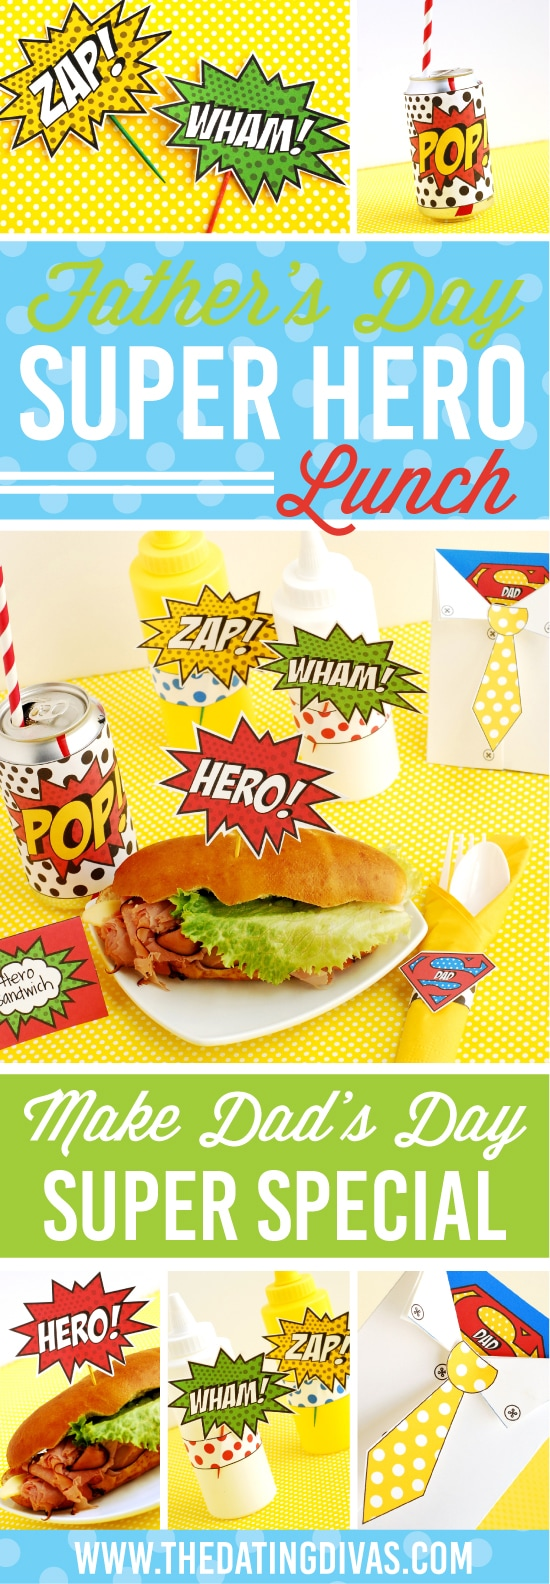 These Father's Day superhero party printables are the cutest things! The superhero Father's Day card is my favorite part! #FathersDay #TheDatingDivas #SuperheroParty #SuperheroPrintables